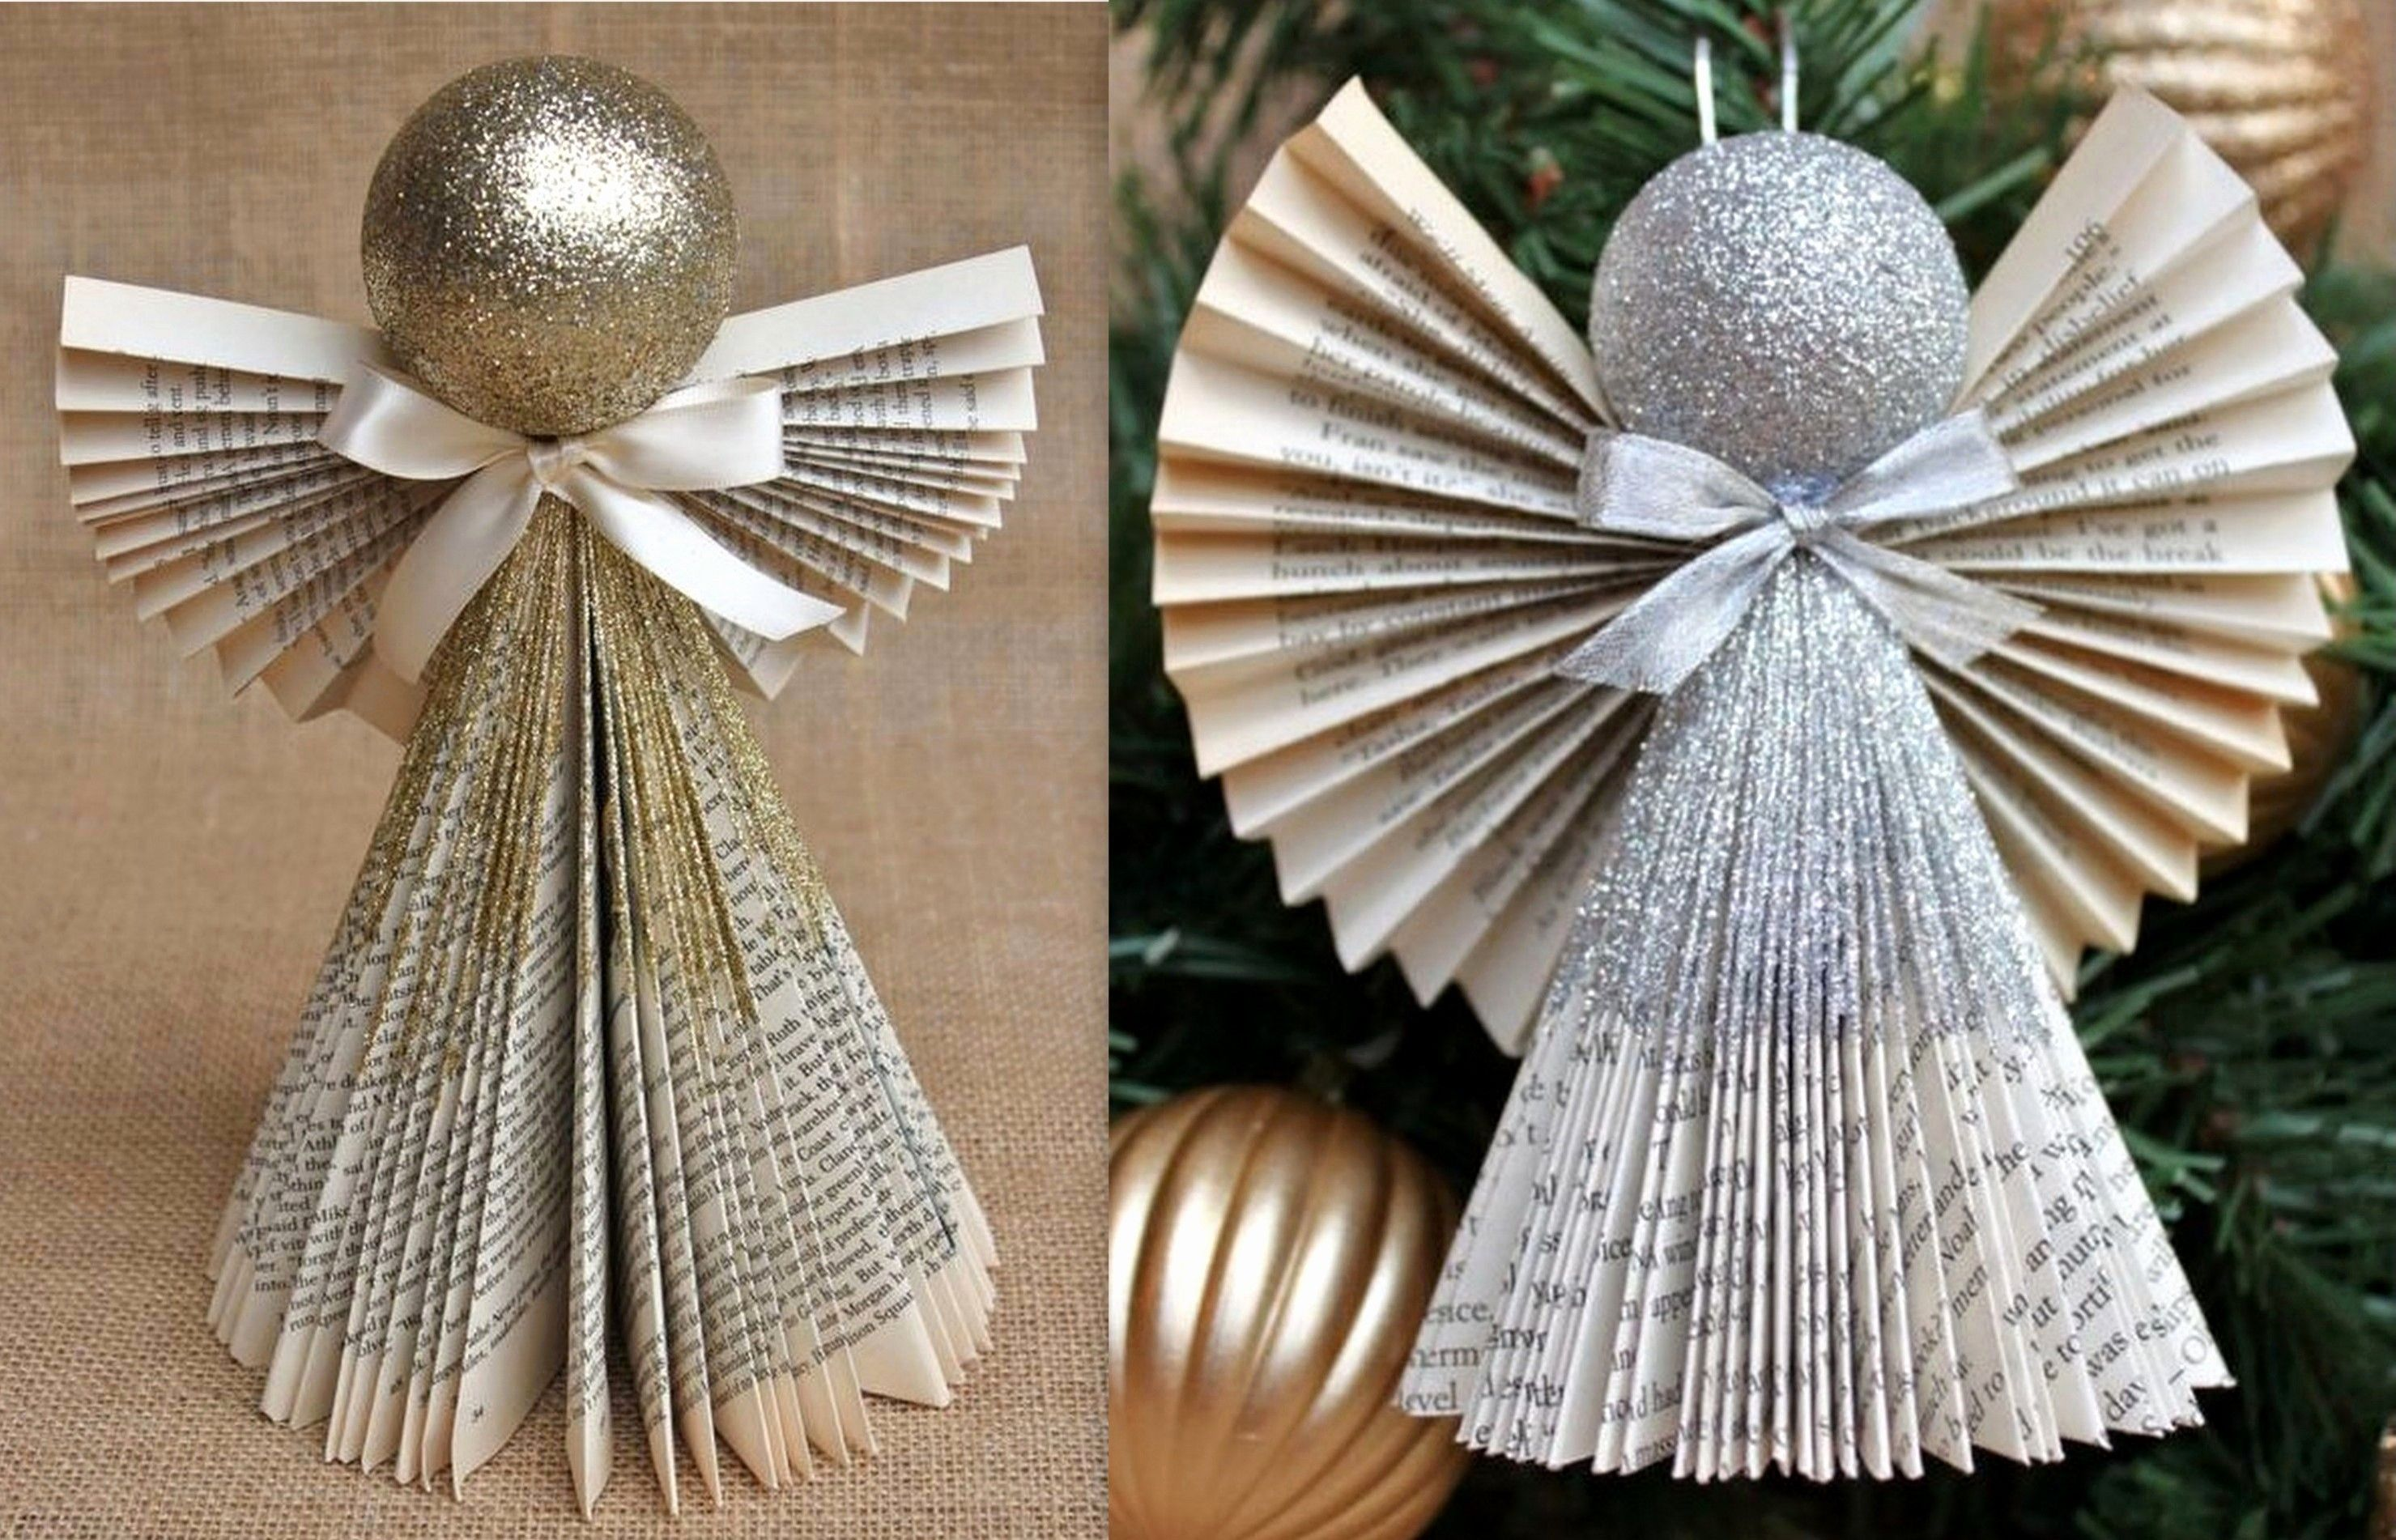 Faire deco noel - noel decoration